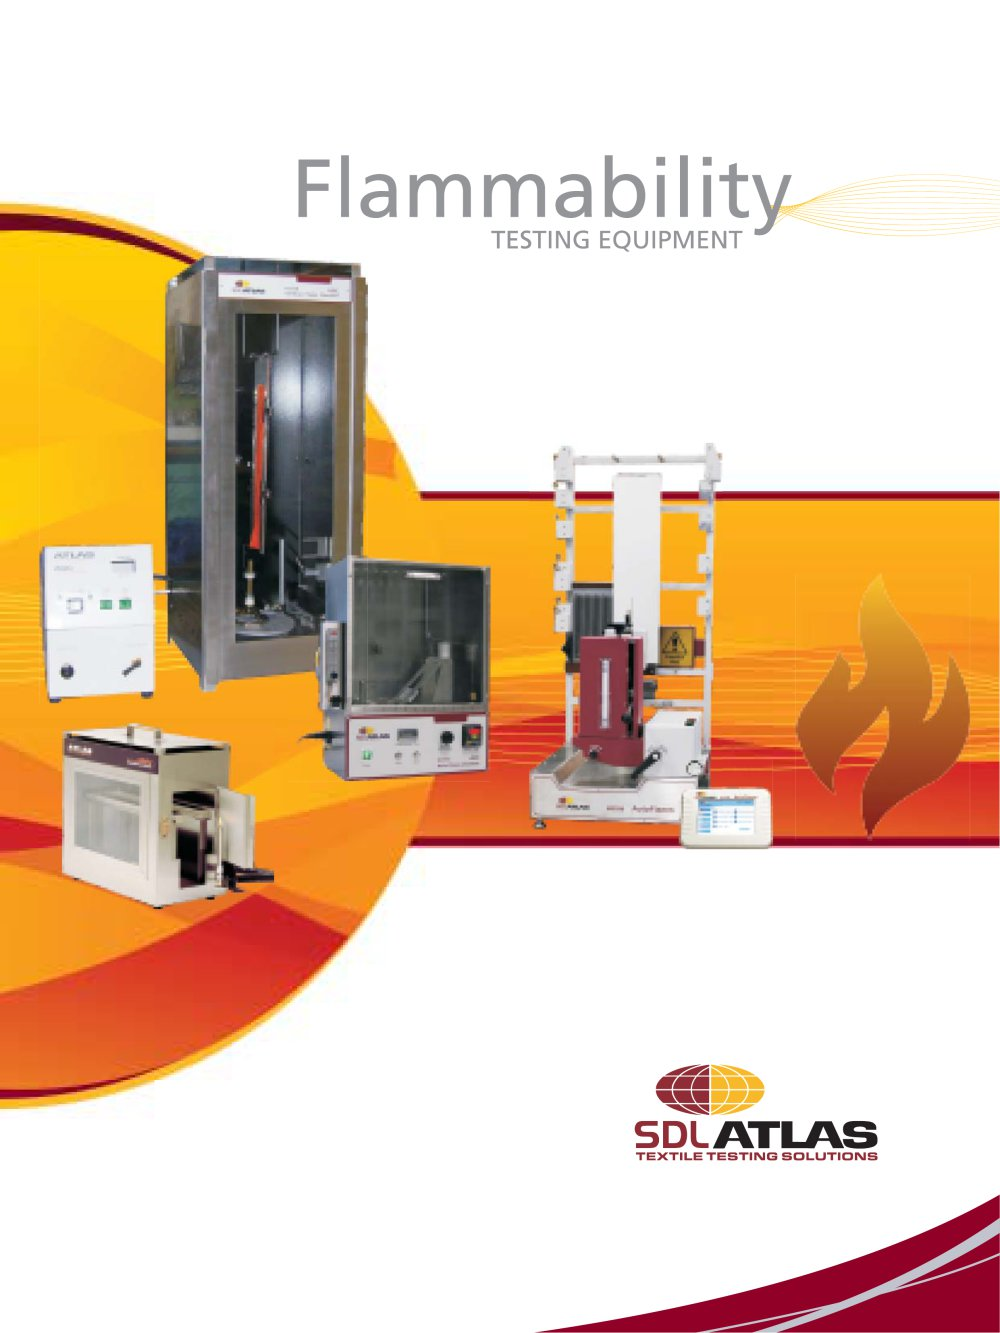 afc 45� automatic flammability tester - 1 / 6 pages